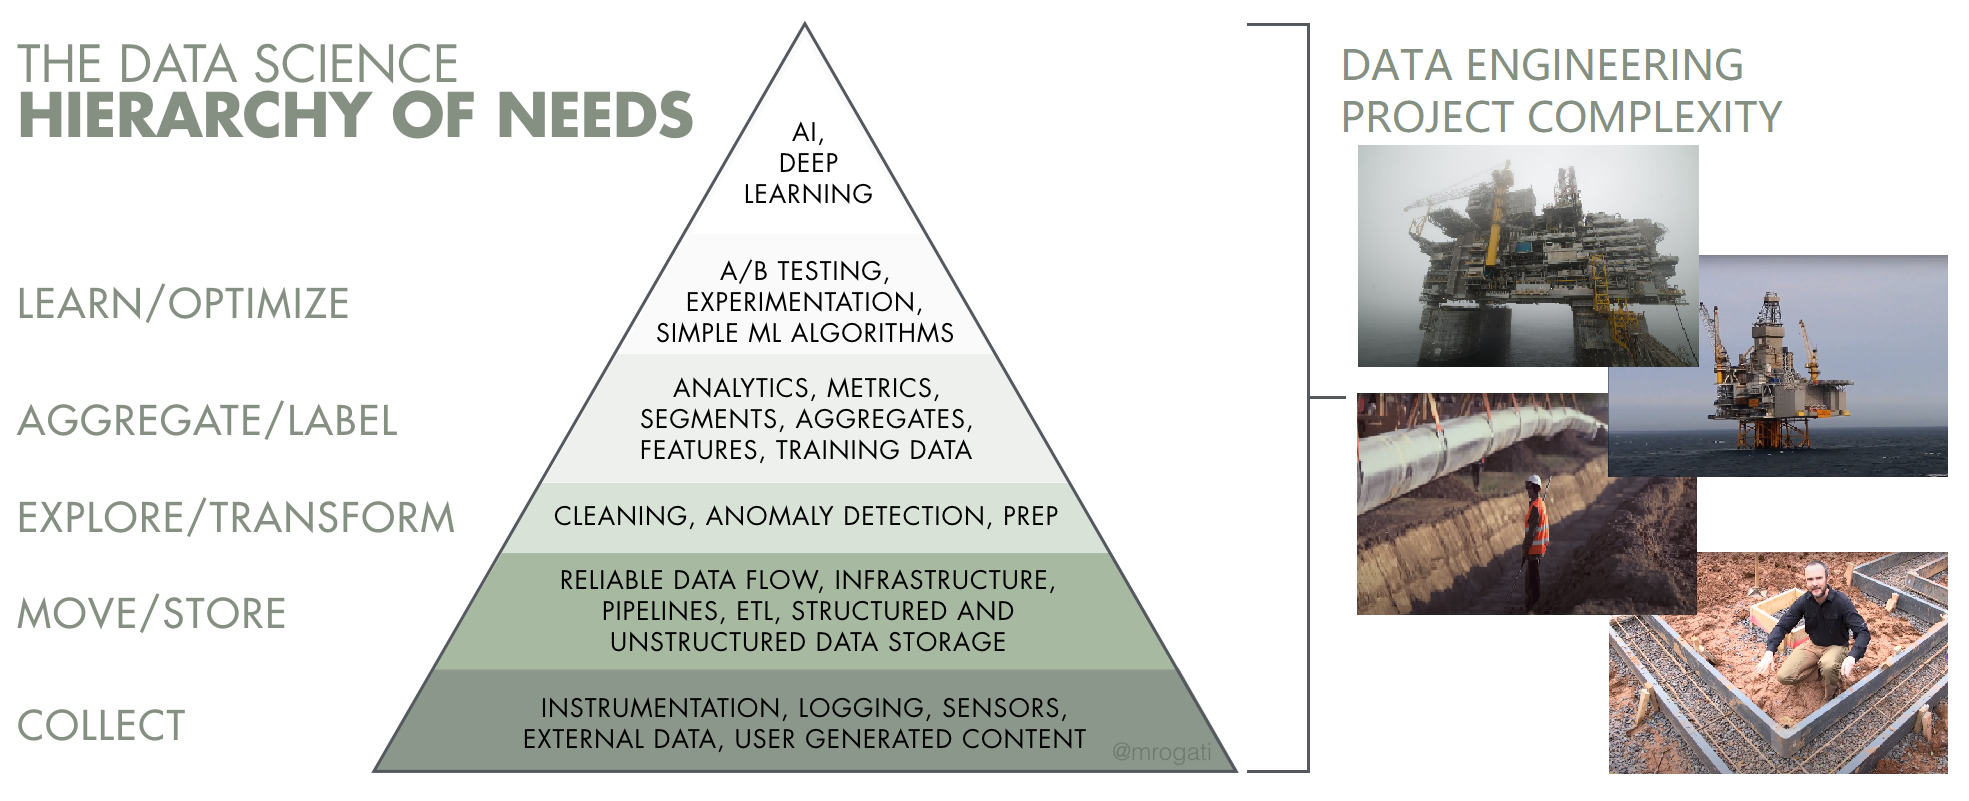 The growing complexity of data engineering compared to the oil industry infrastructure